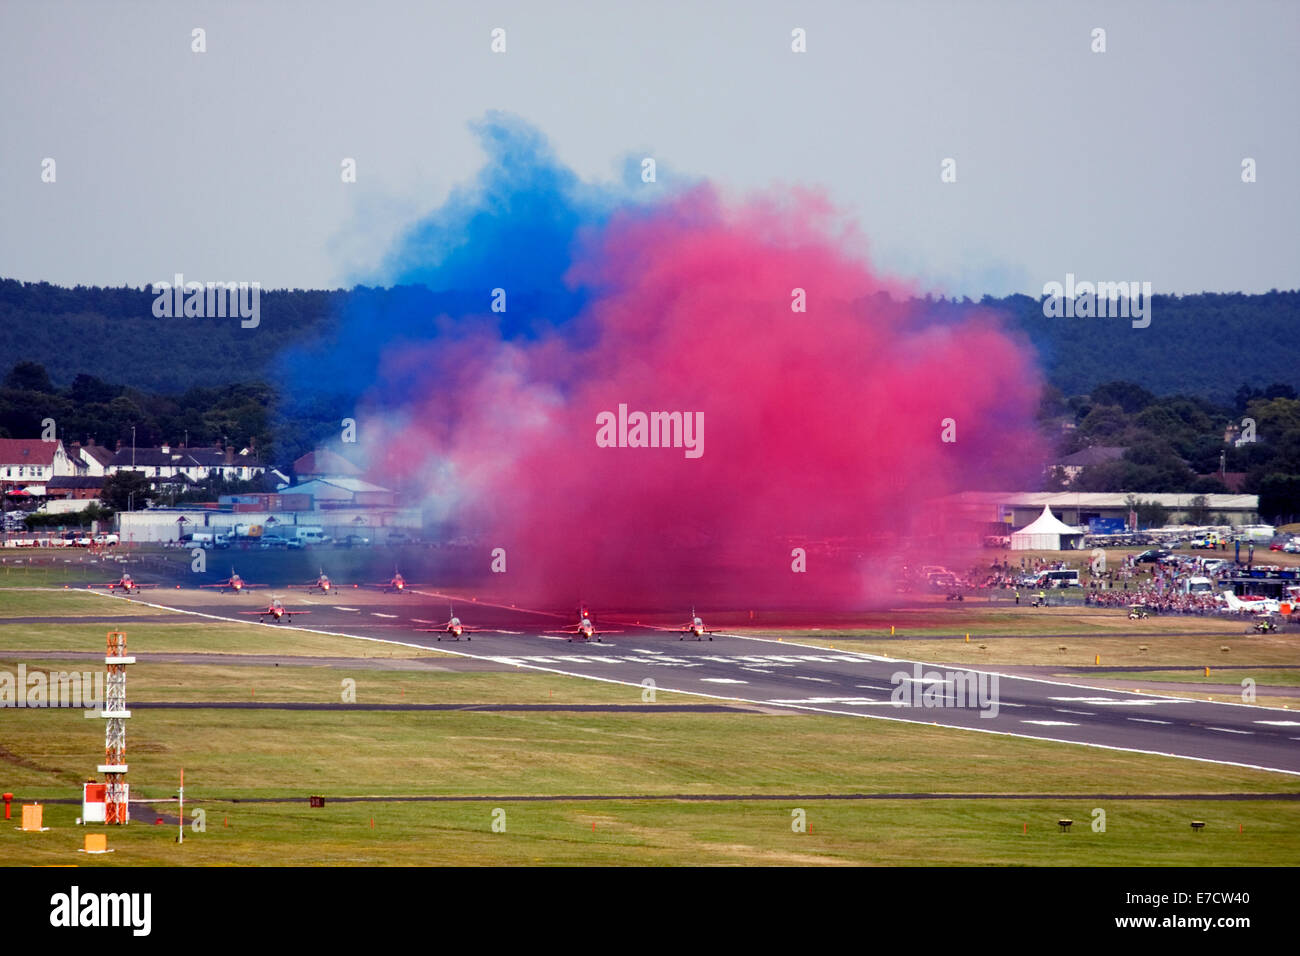 Red Arrows Royal Air Force Aerobatic Team getting ready for display during Farnborough International Airshow 2014 Stock Photo